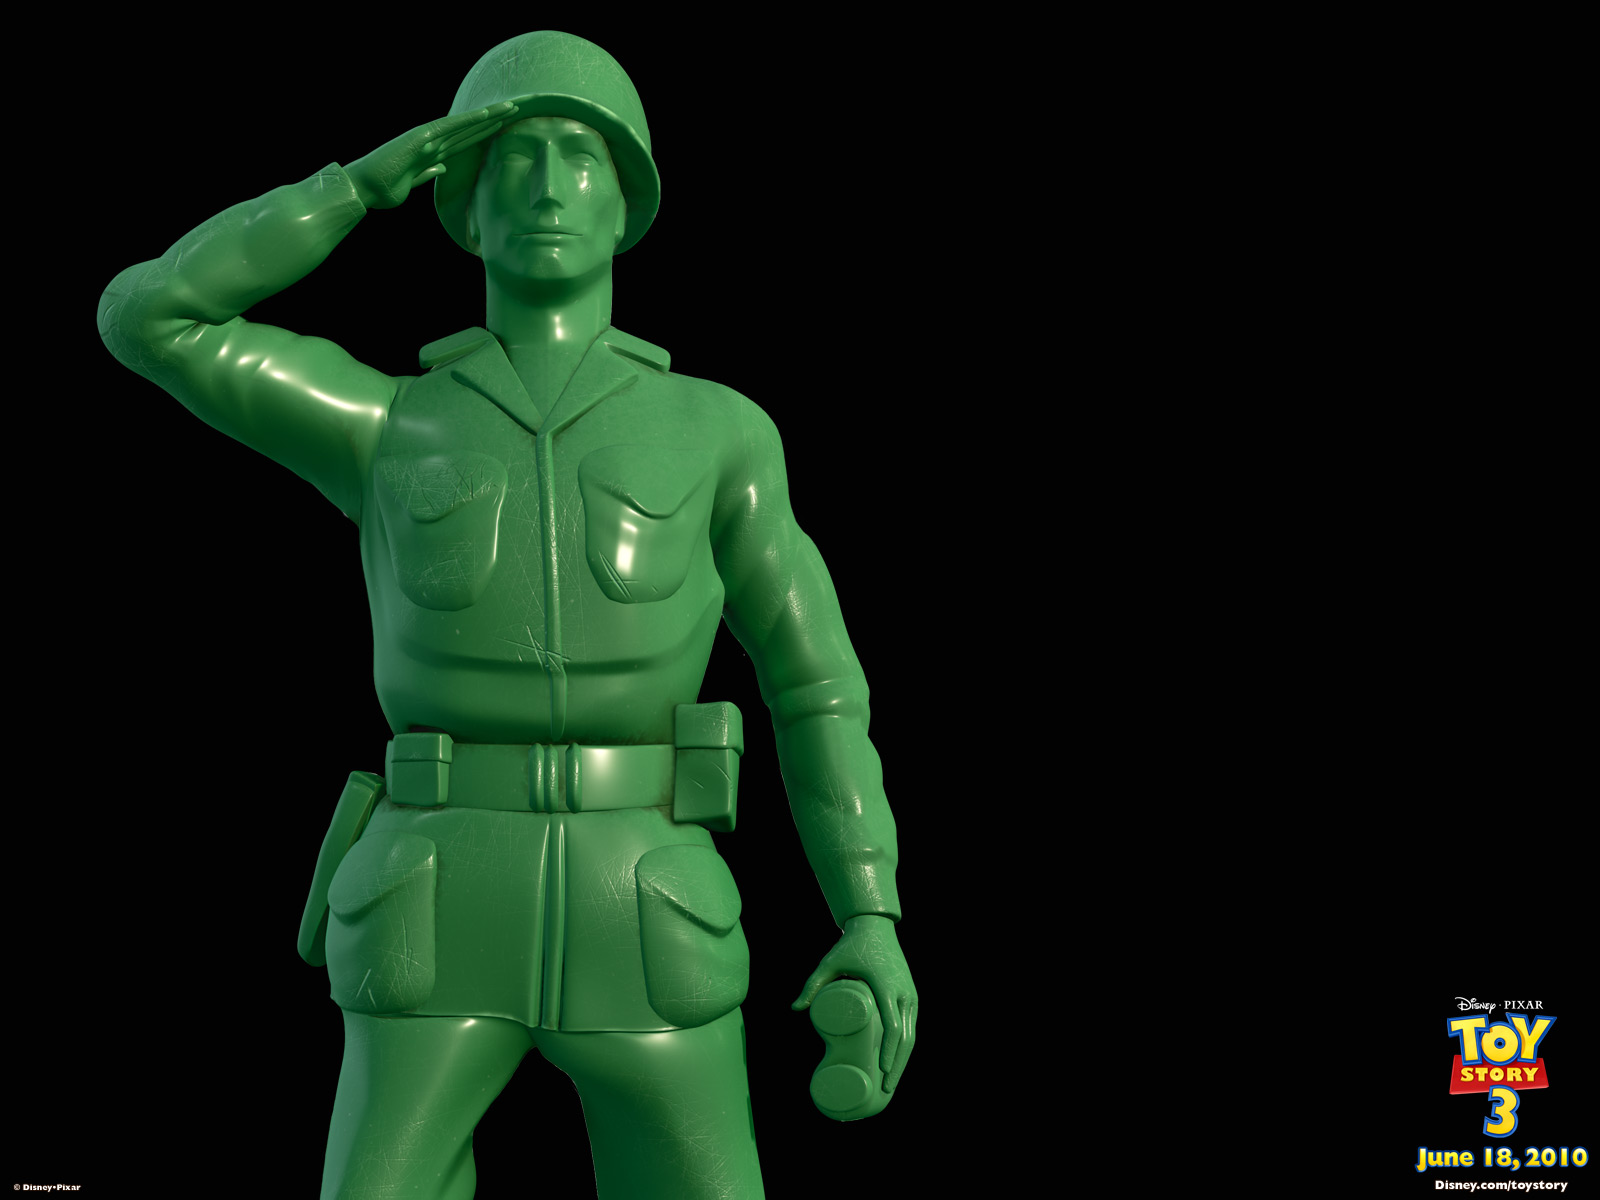 Soldier clipart yes sir Sarge (Toy Wiki Story) Pixar